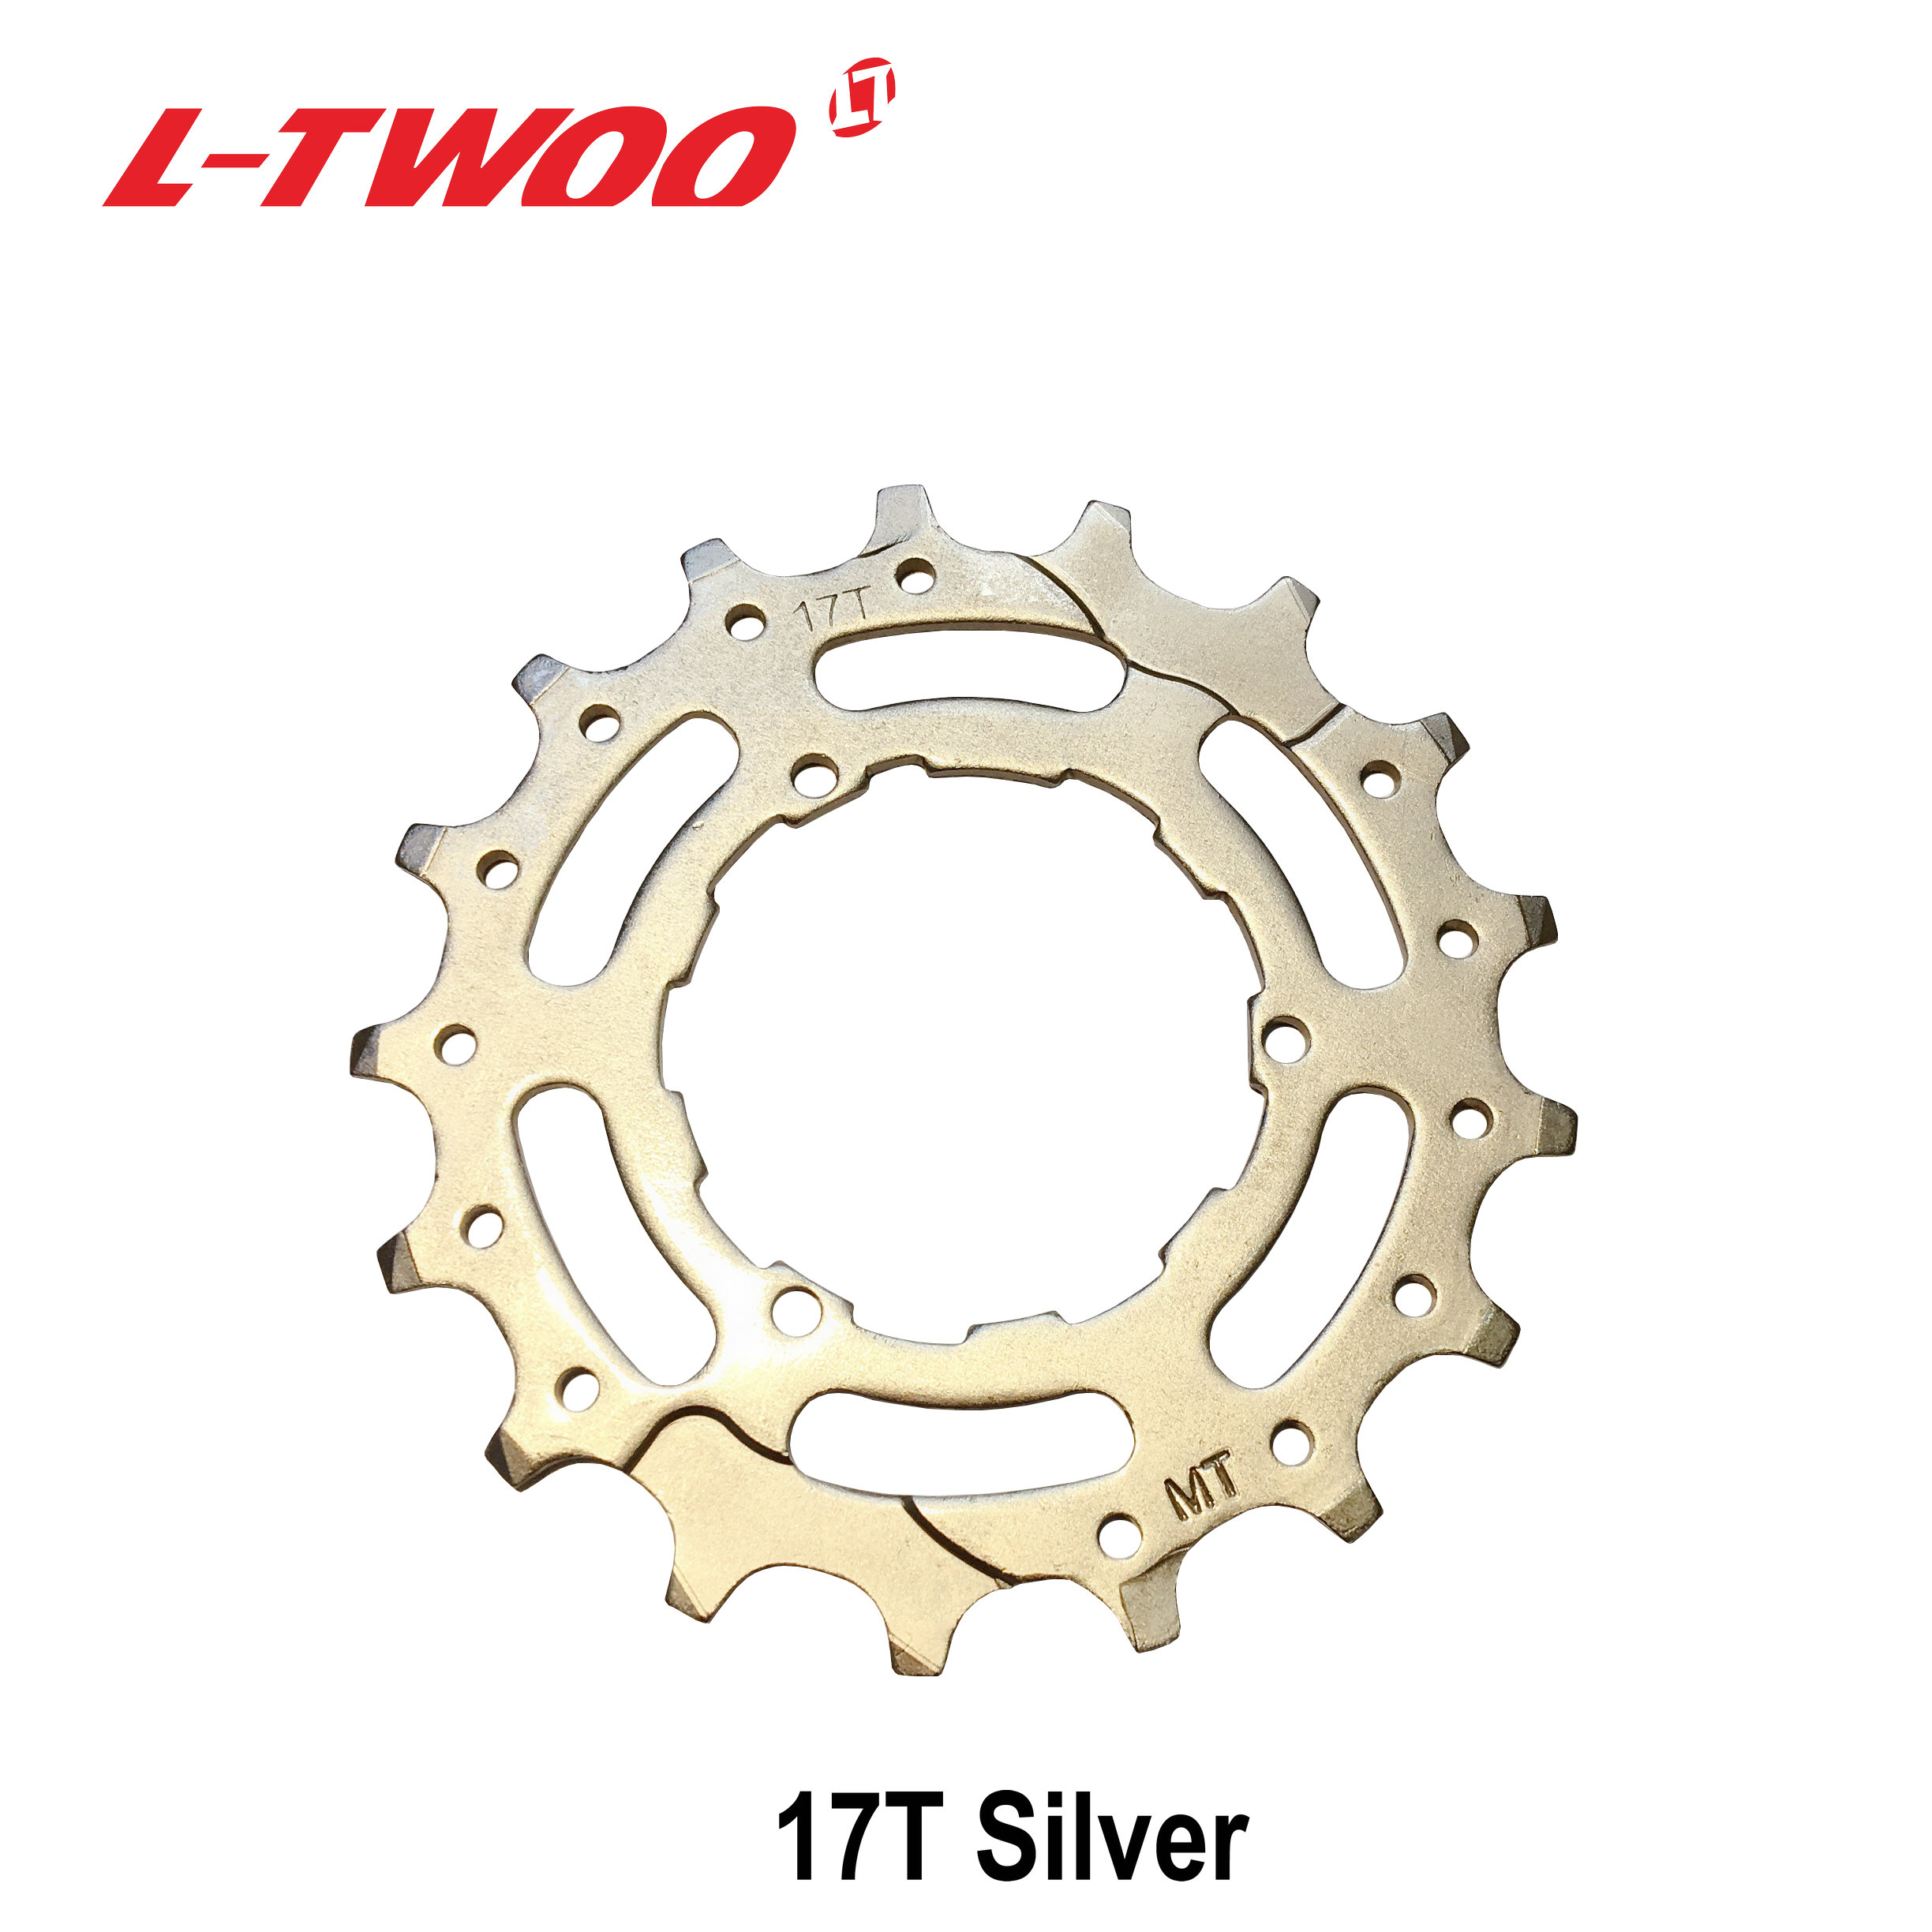 MTB Road Bike Freewheel Cog 8 9 10 11 Speed 11T 12T 13T 15T 17T19T 21T 23T 25T Bicycle Cassette <font><b>Sprockets</b></font> Accessories Spare Part image